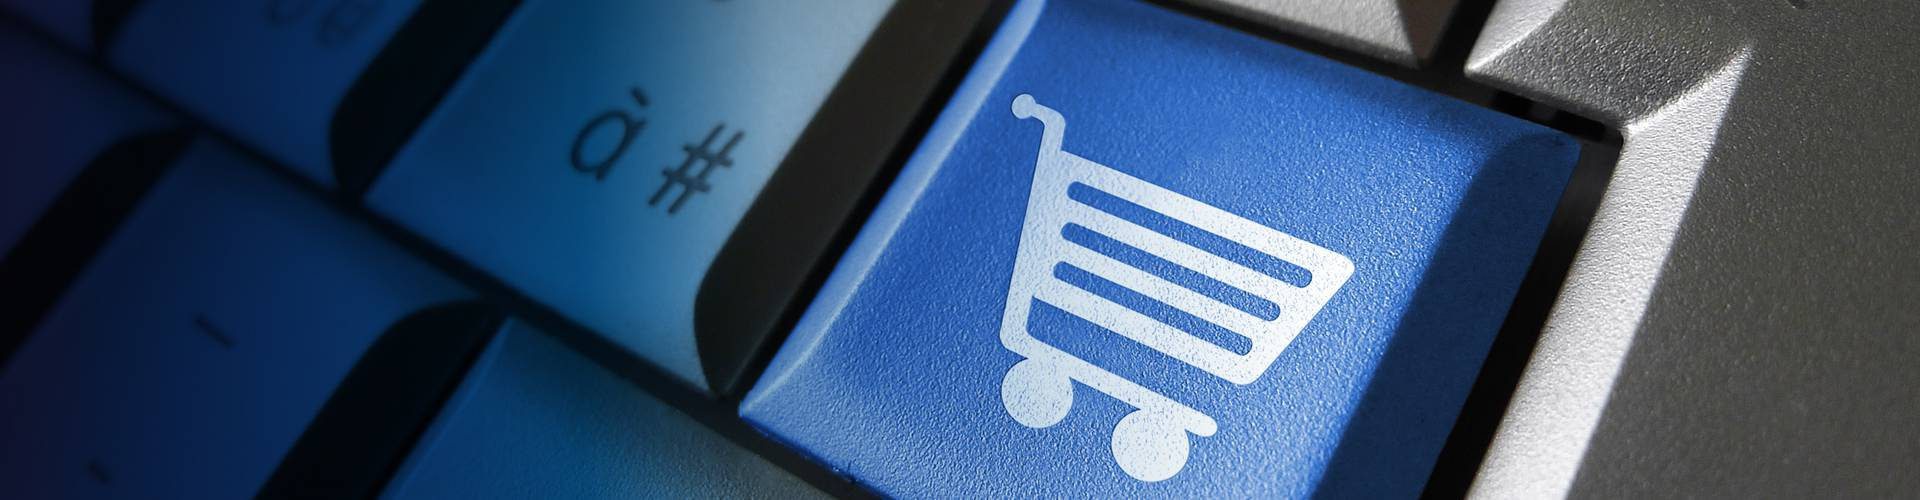 Ecommerce Online Shopping Concept